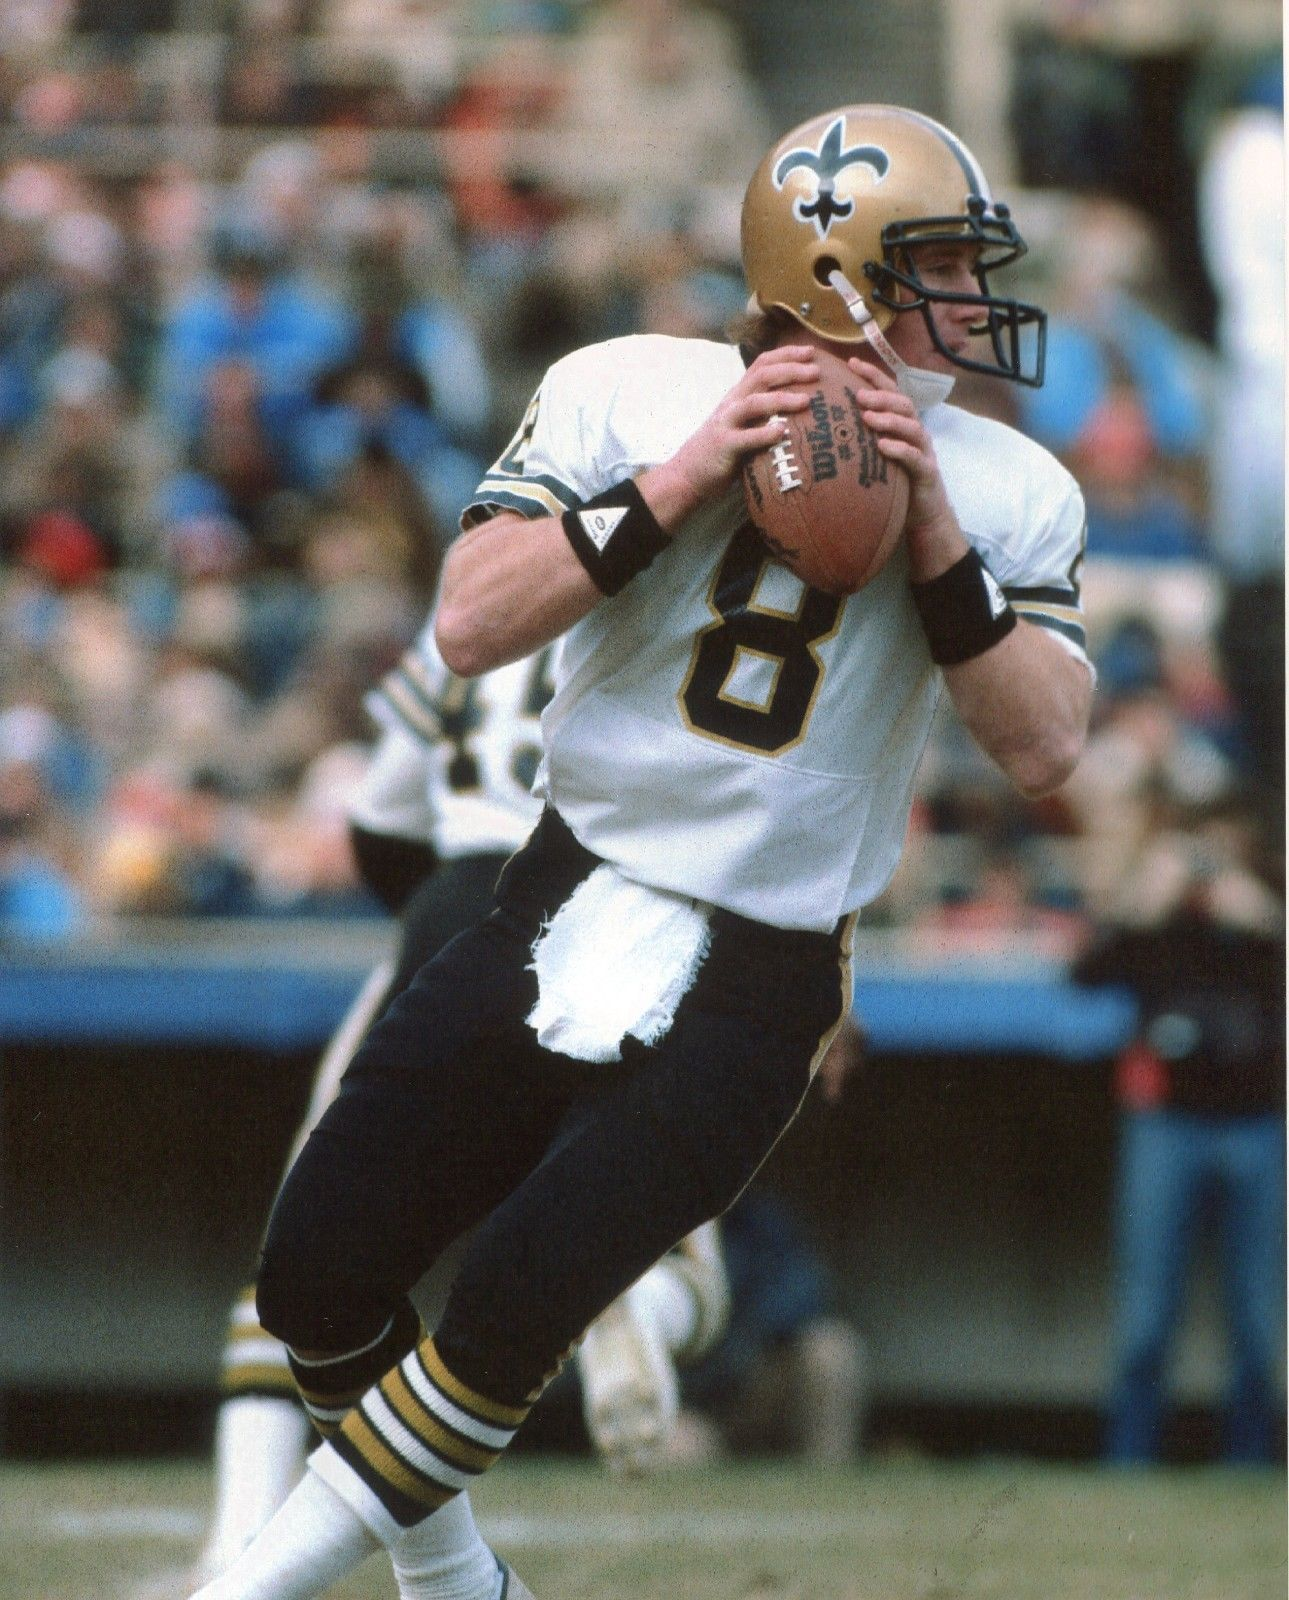 Primary image for Archie Manning New Orleans Saints SA Vintage 8X10 Color Football Memorabilia Pho